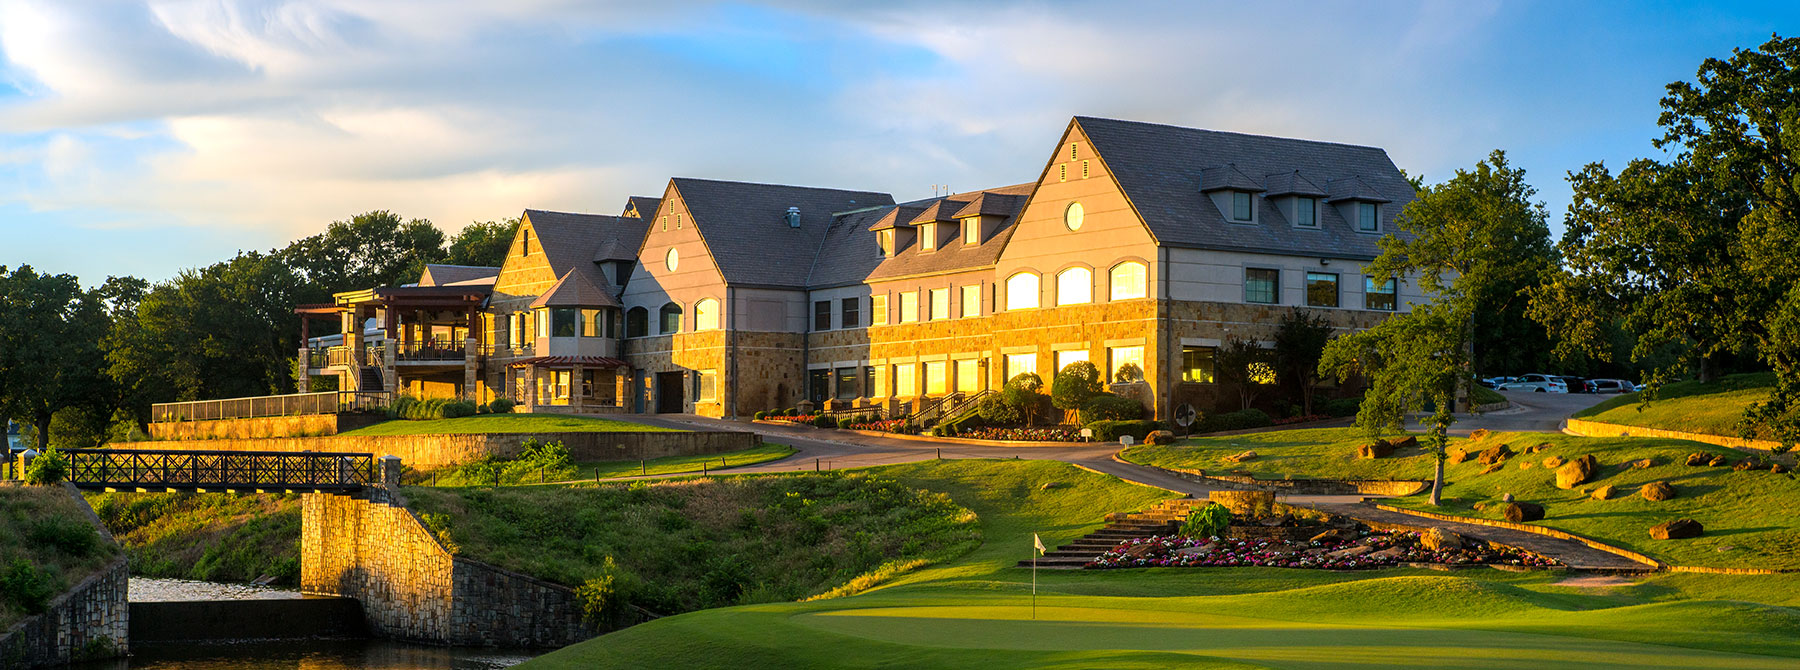 Timarron-Main-Golf-and-Clubhouse-1.jpg